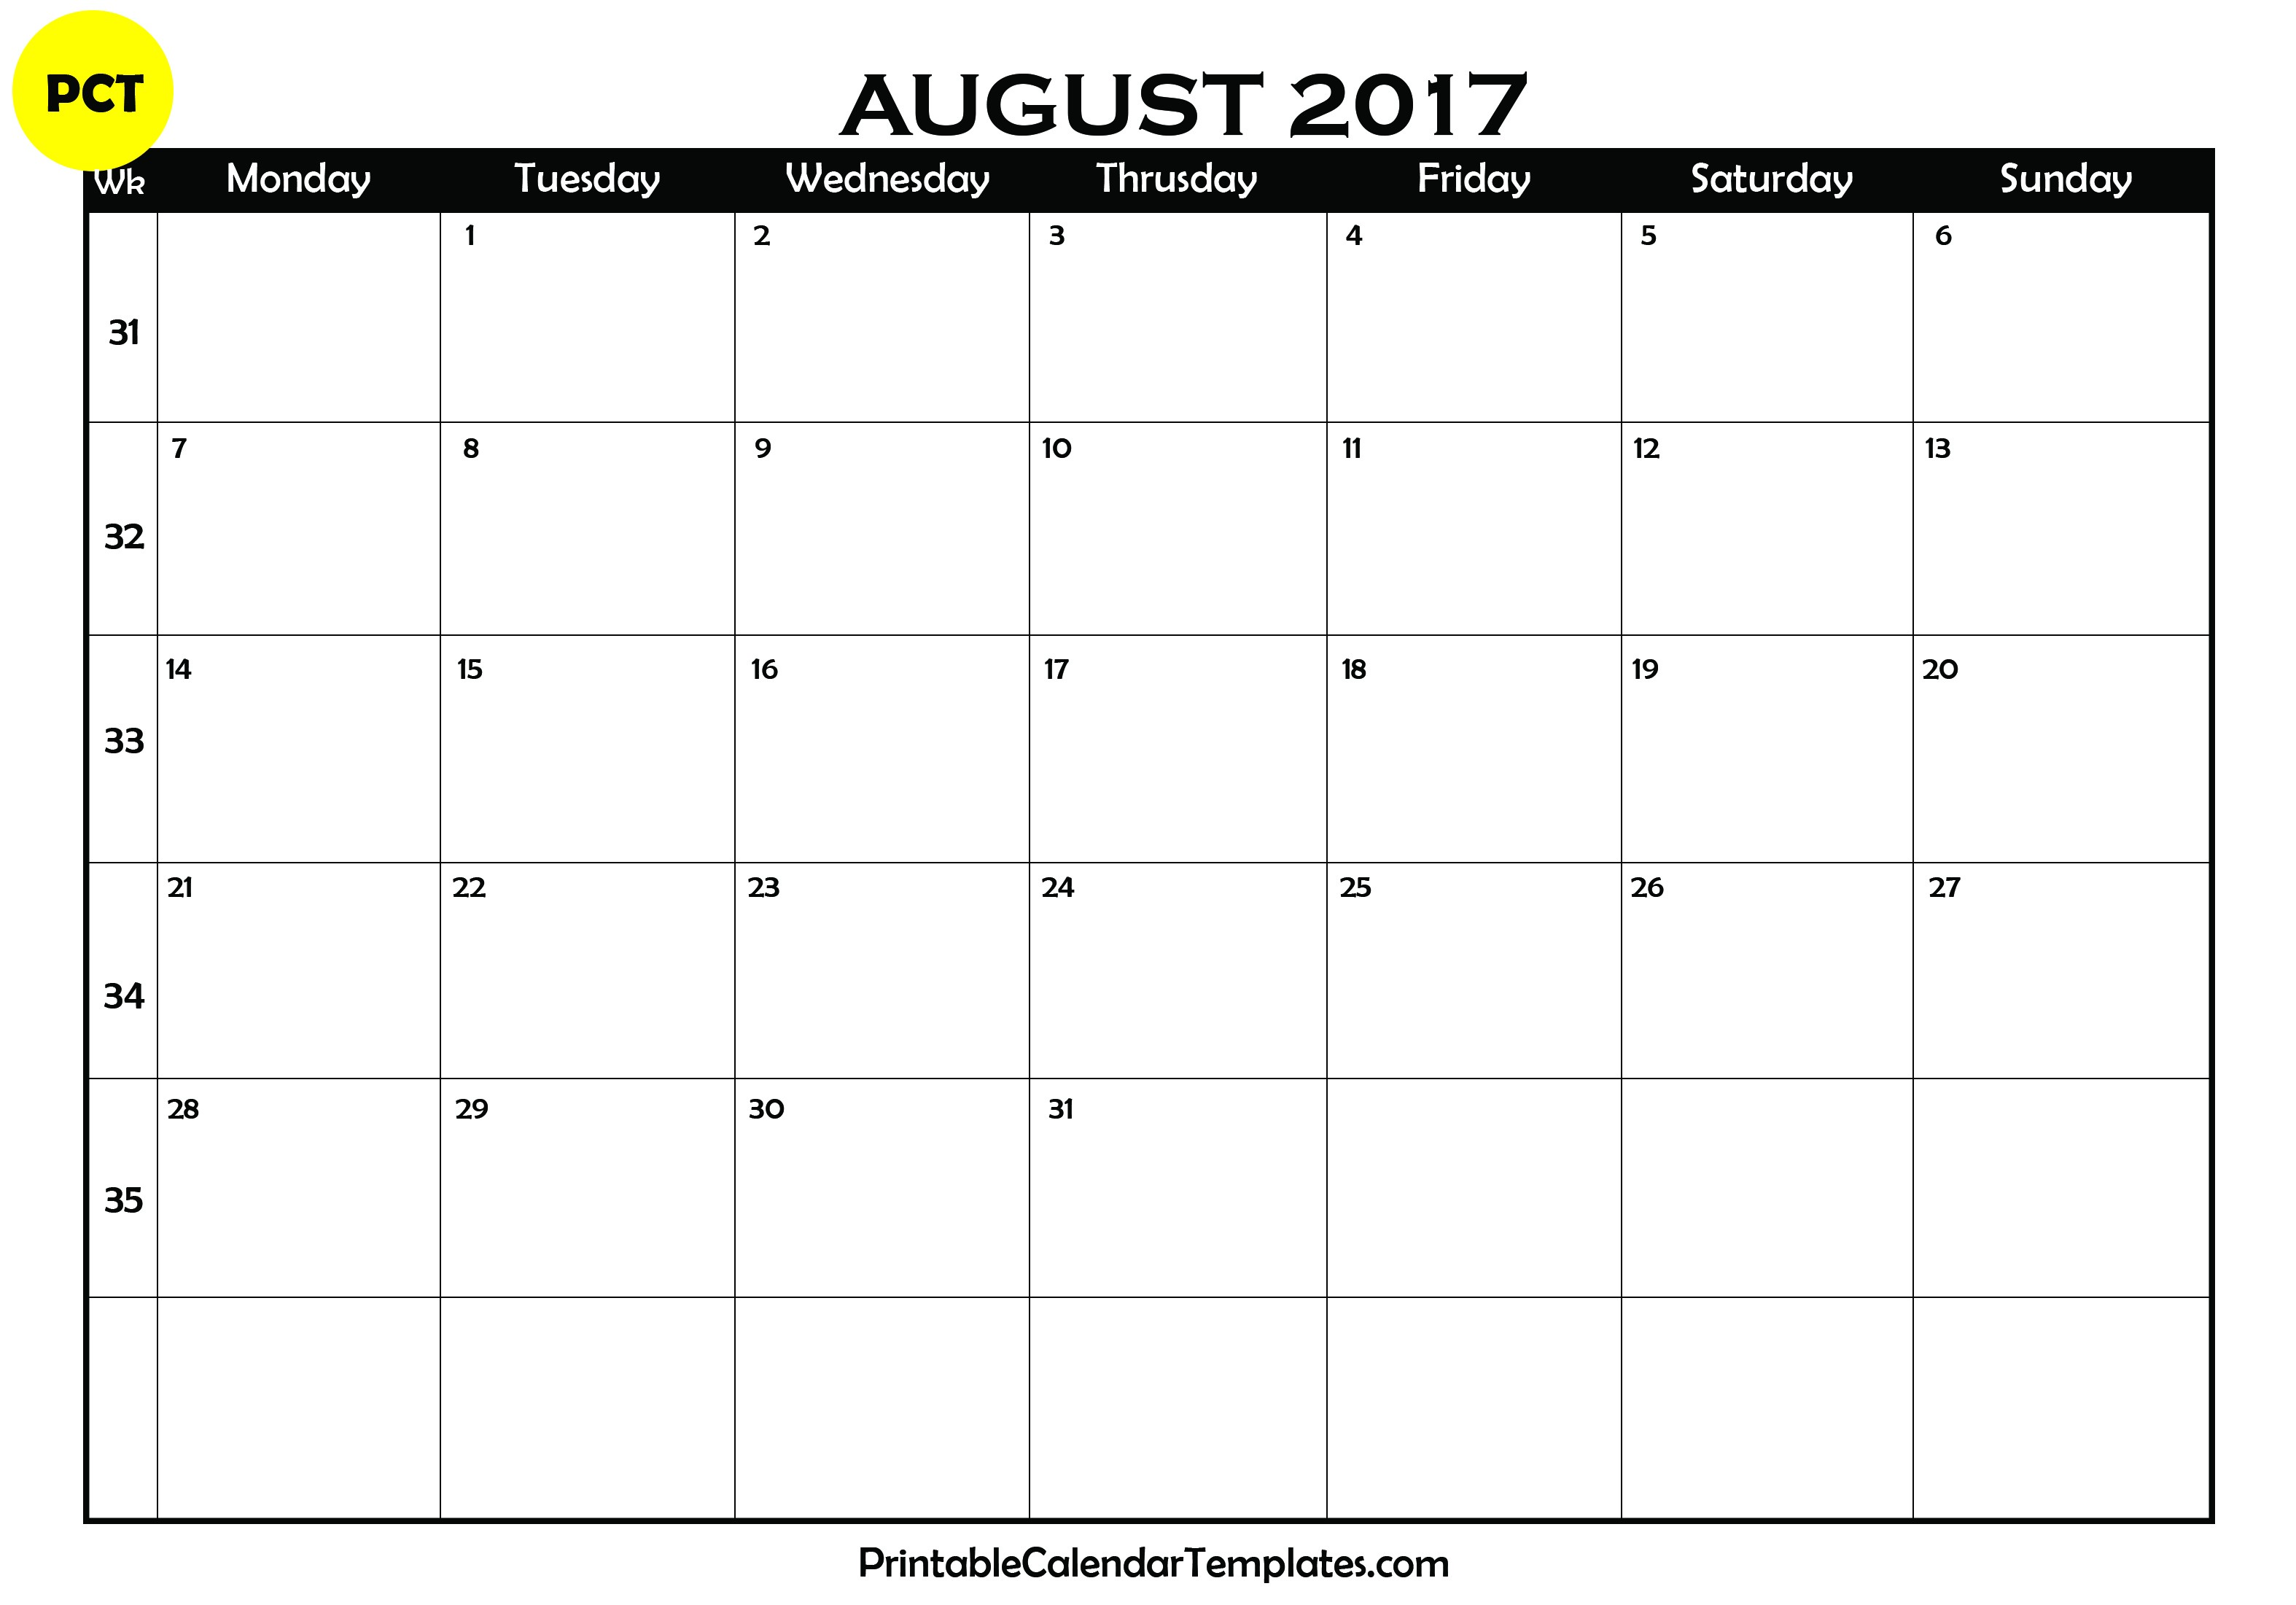 October 2017 Calendar With Holidays | calendar …